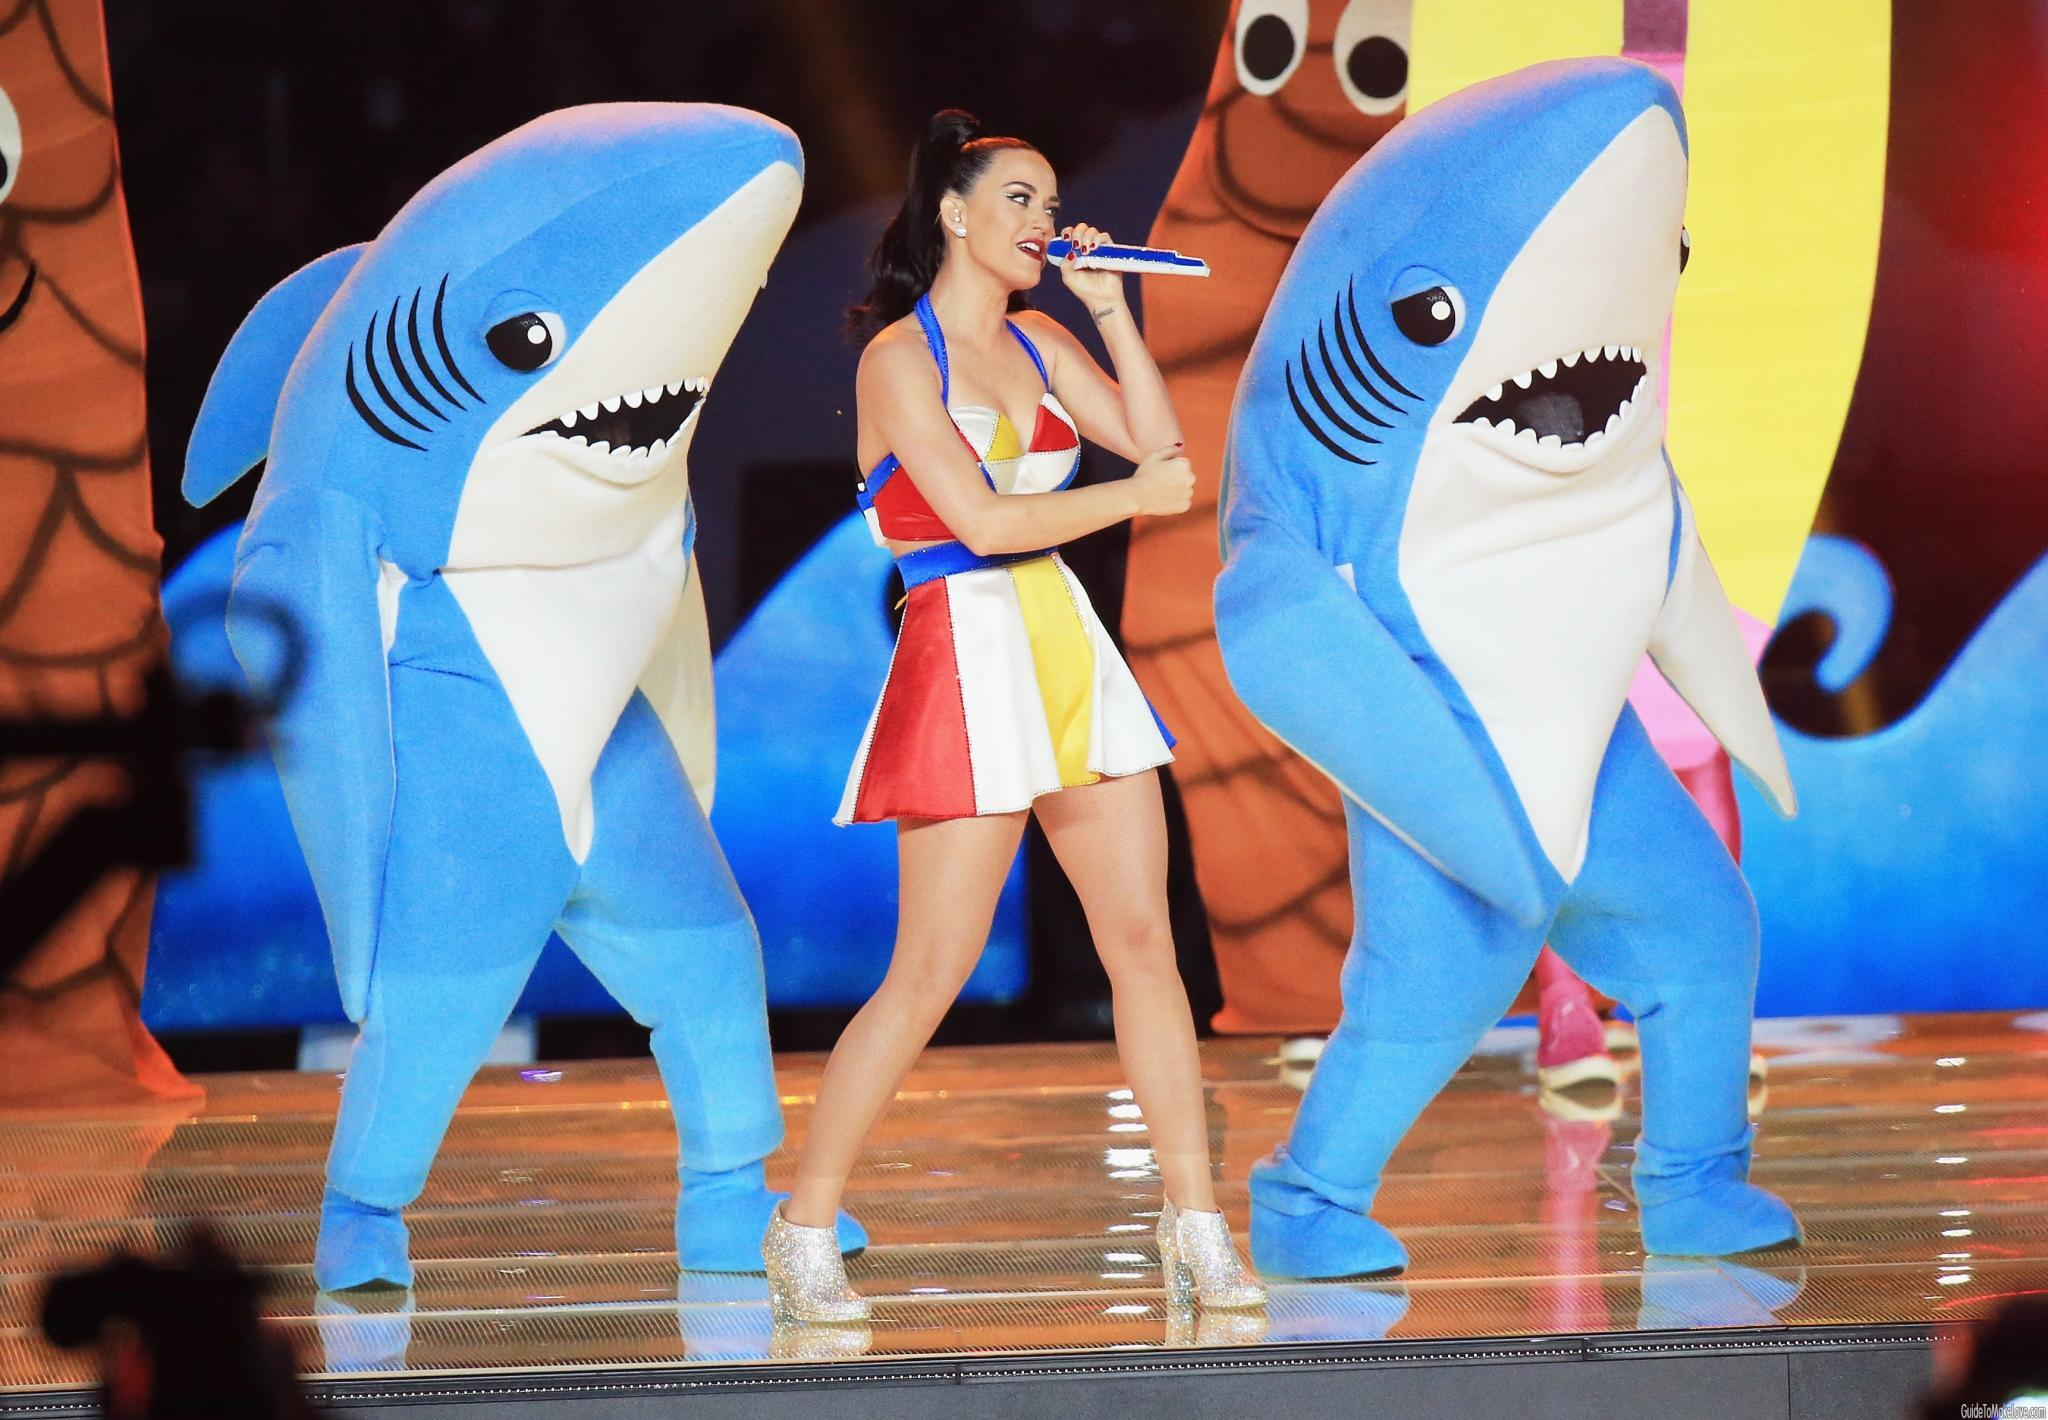 Was the Super Bowl half-time show the craziest thing Katy Perry has ever done? (probably not)